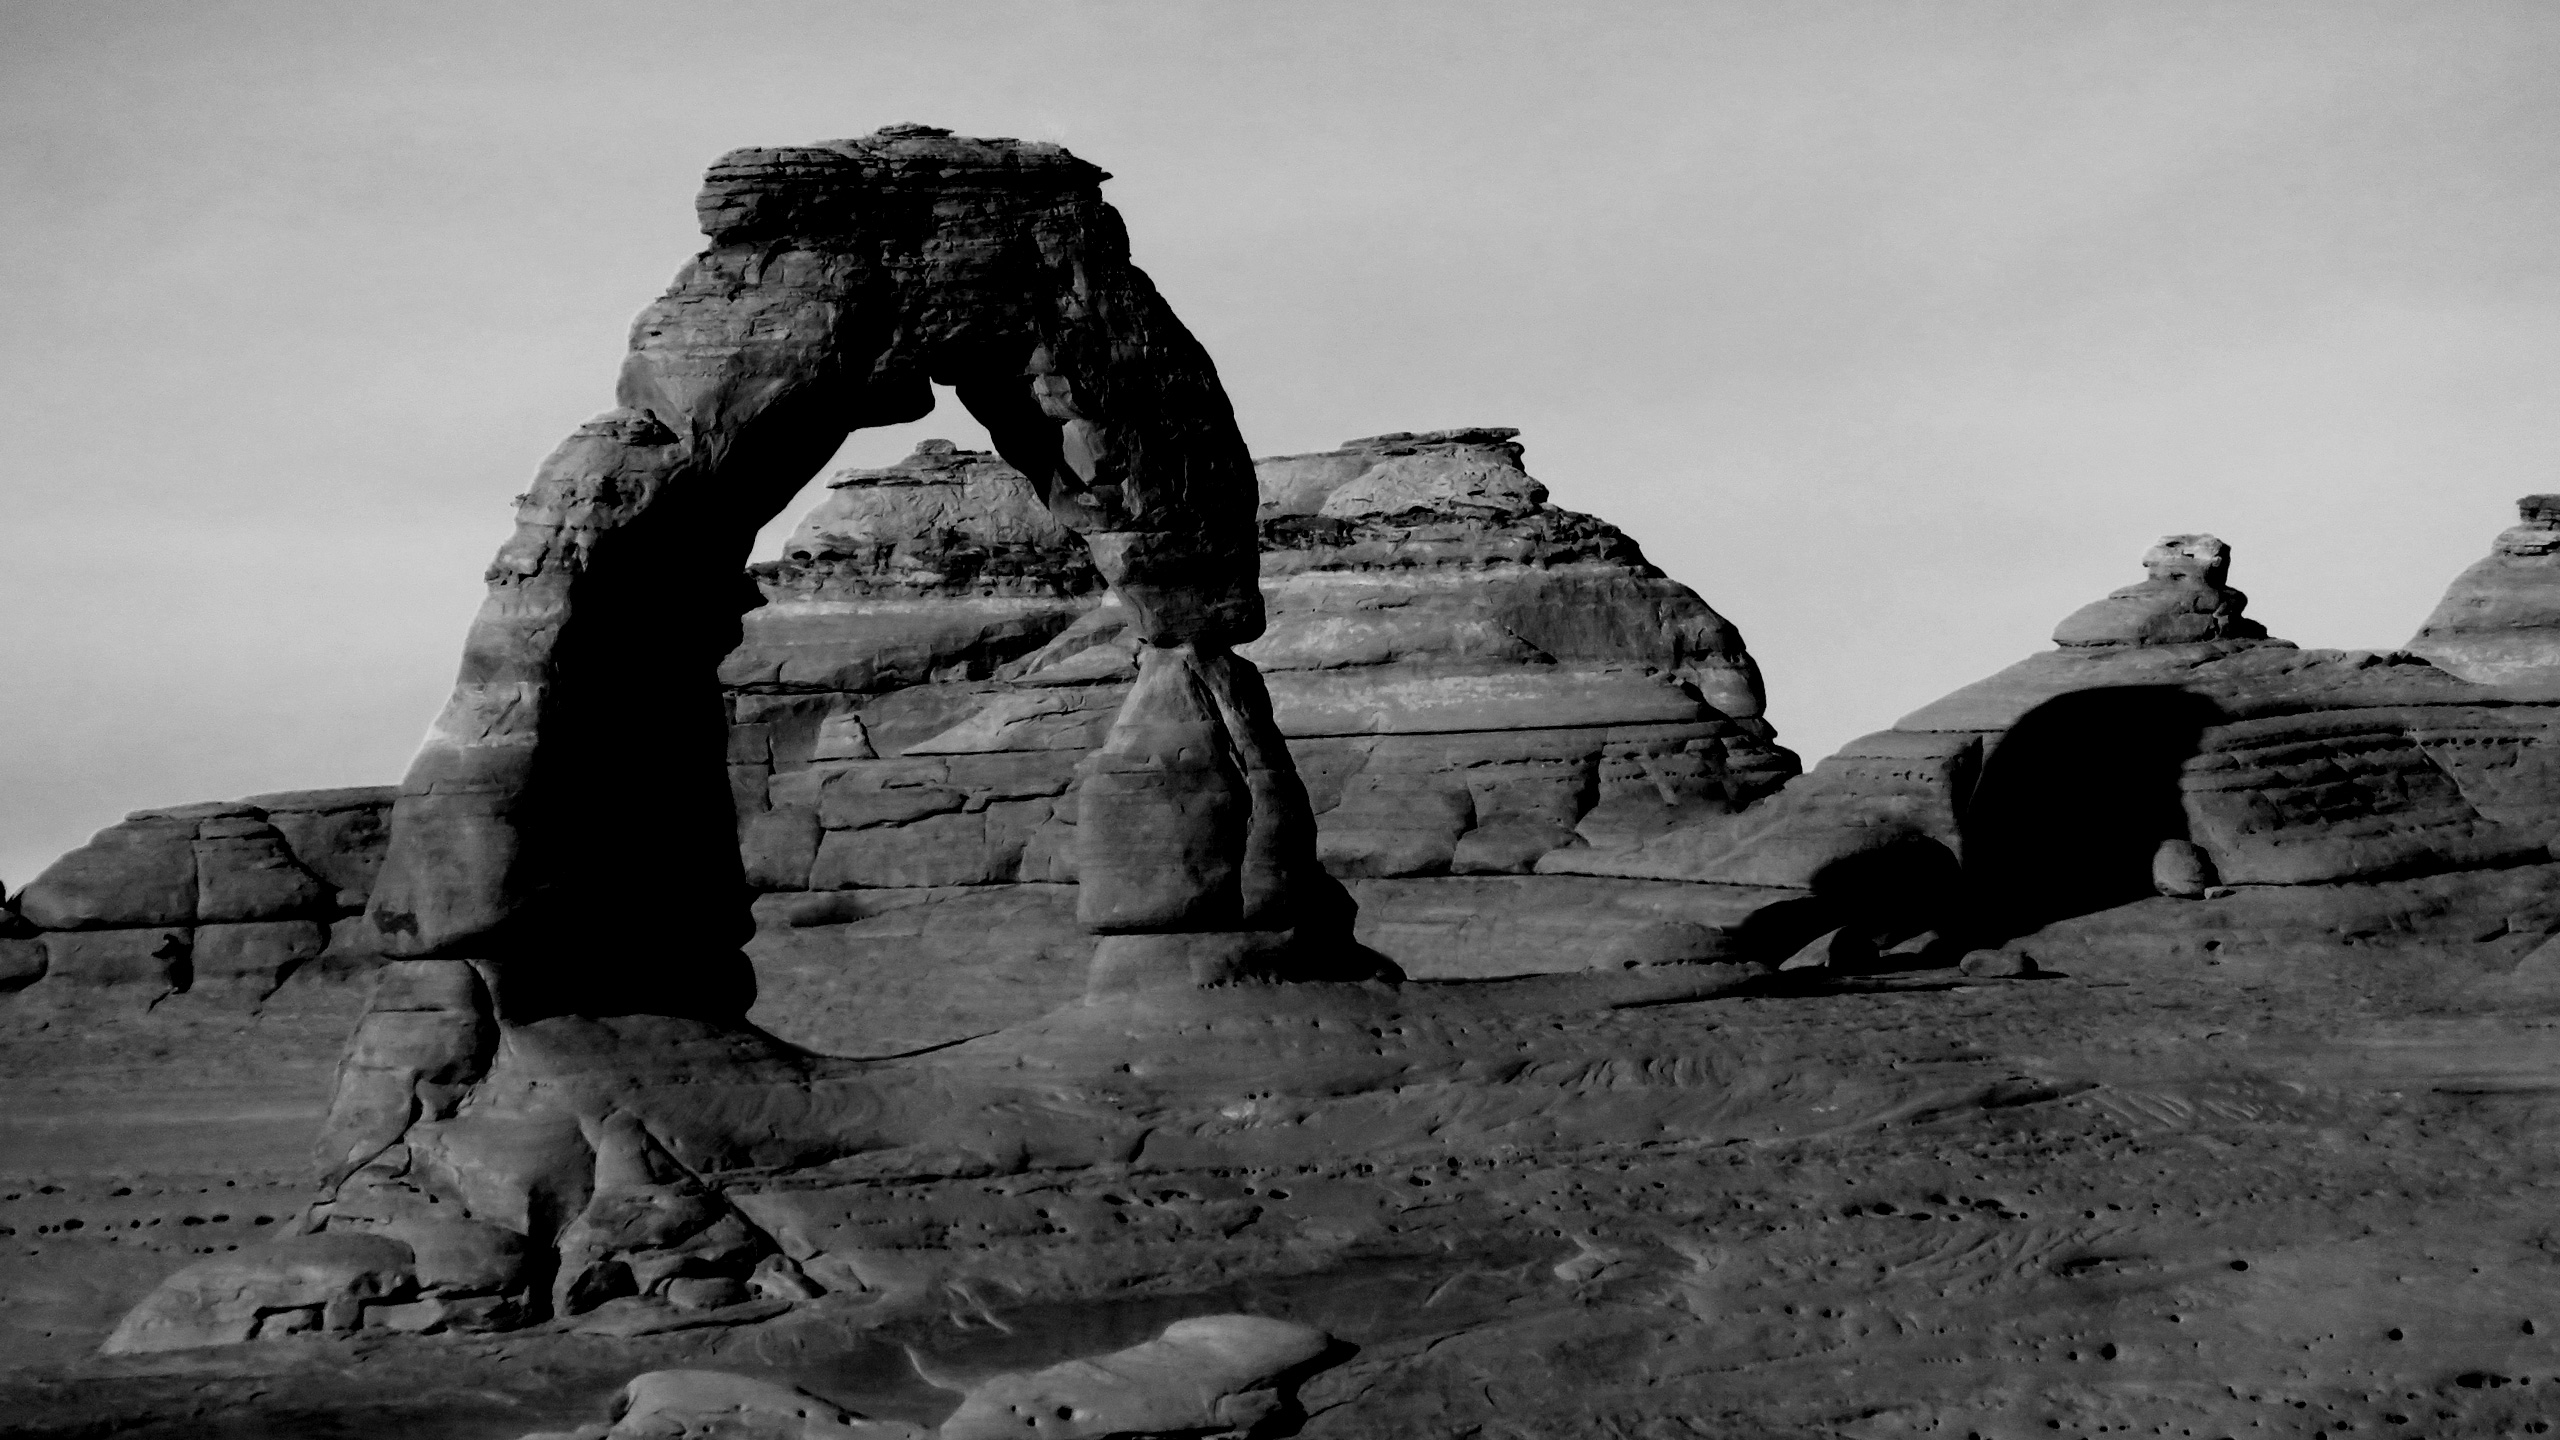 Arches-National-Parks-Delicate Arch